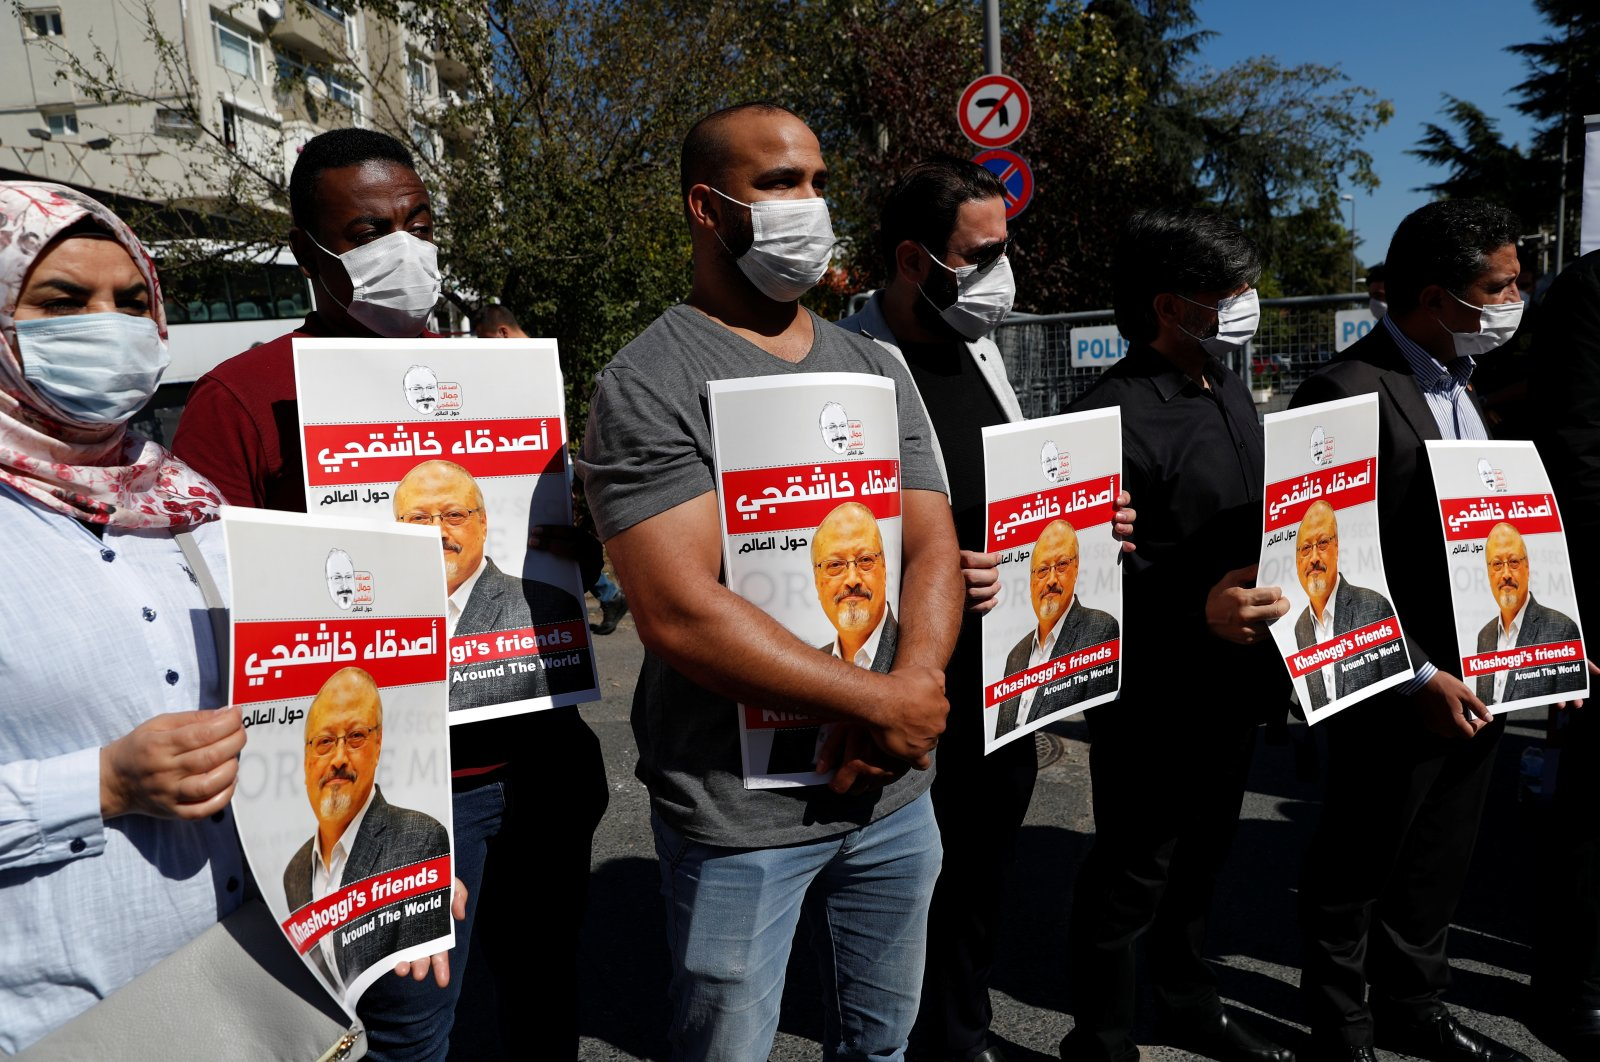 People hold pictures of Saudi journalist Jamal Khashoggi during a gathering to mark the second anniversary of Khashoggi's killing at the Saudi Consulate, in Istanbul, Turkey, October 2, 2020. (Reuters Photo)